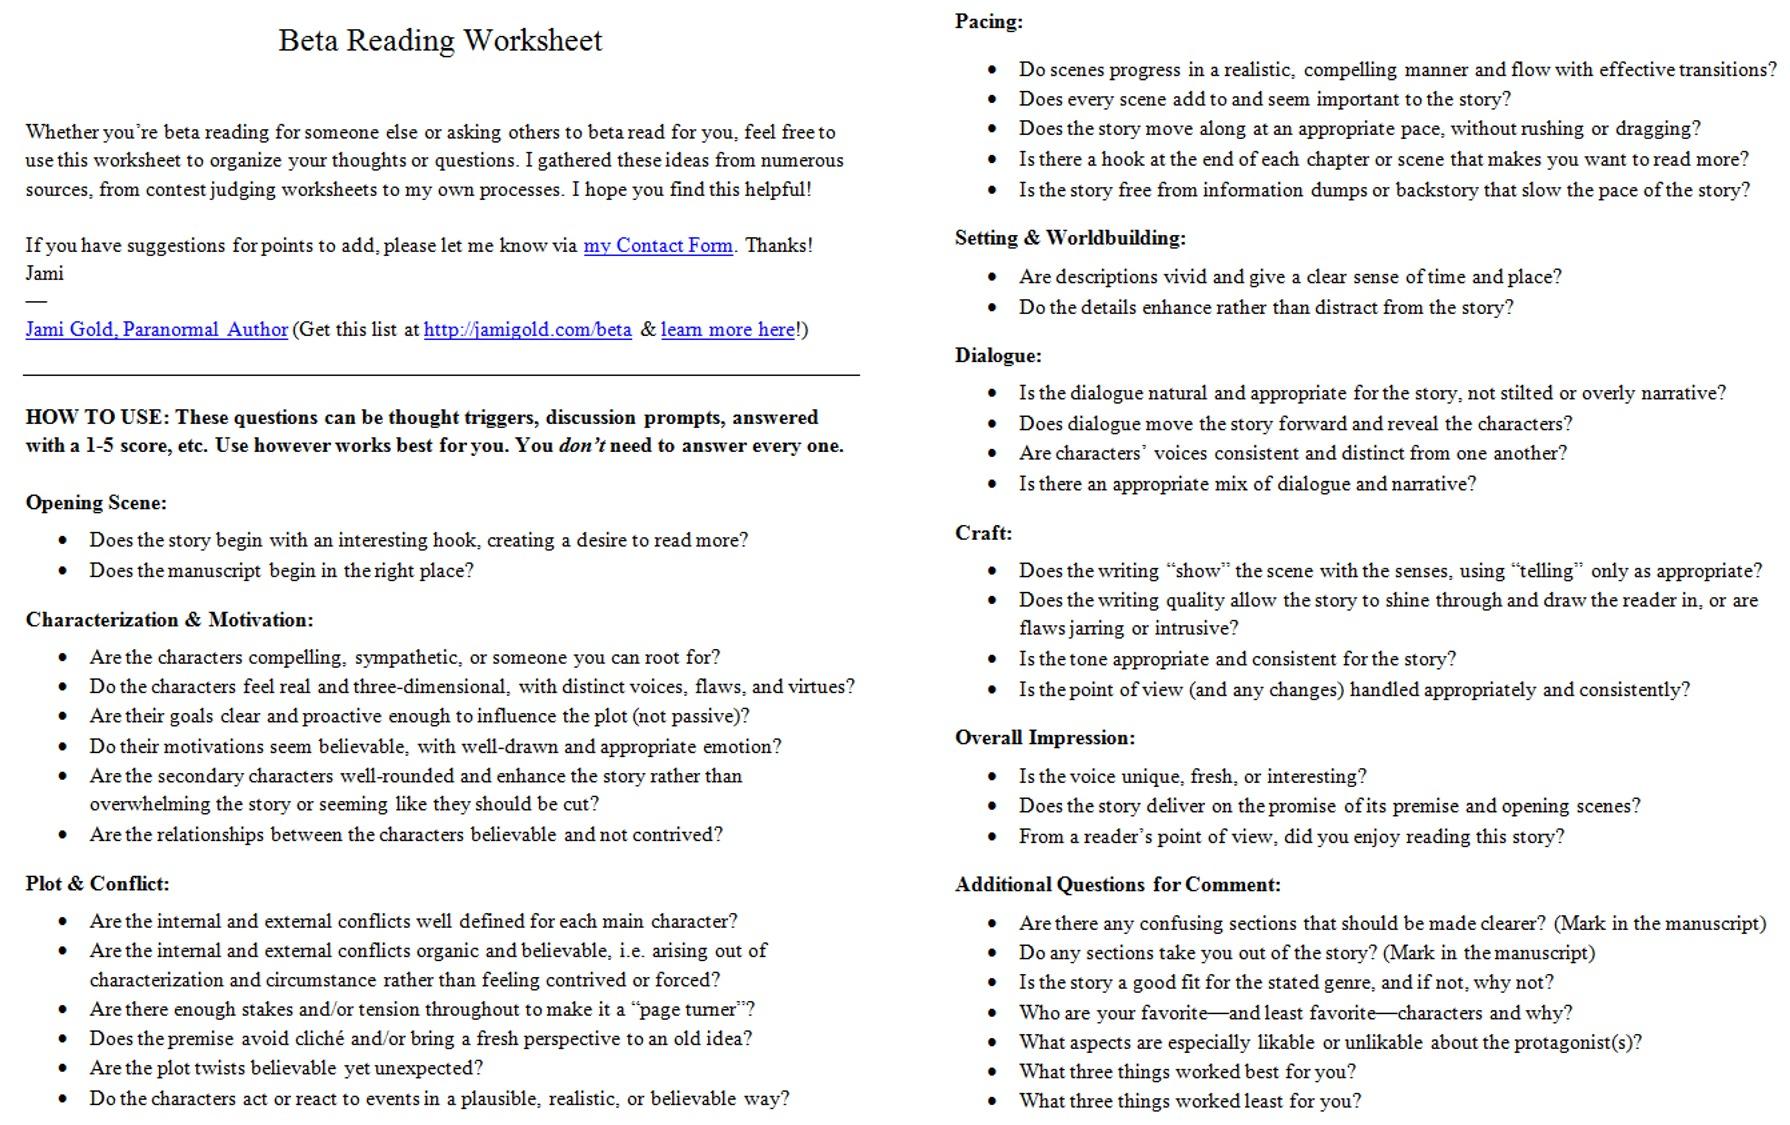 Aldiablosus  Unique Worksheets For Writers  Jami Gold Paranormal Author With Entrancing Screen Shot Of The Twopage Beta Reading Worksheet With Divine Skeletal System Worksheets Also Genealogy Worksheets In Addition Stoichiometry Worksheet  Answers And Easter Worksheets For Preschool As Well As Point Of View Worksheets Th Grade Additionally Social Security Tax Worksheet From Jamigoldcom With Aldiablosus  Entrancing Worksheets For Writers  Jami Gold Paranormal Author With Divine Screen Shot Of The Twopage Beta Reading Worksheet And Unique Skeletal System Worksheets Also Genealogy Worksheets In Addition Stoichiometry Worksheet  Answers From Jamigoldcom